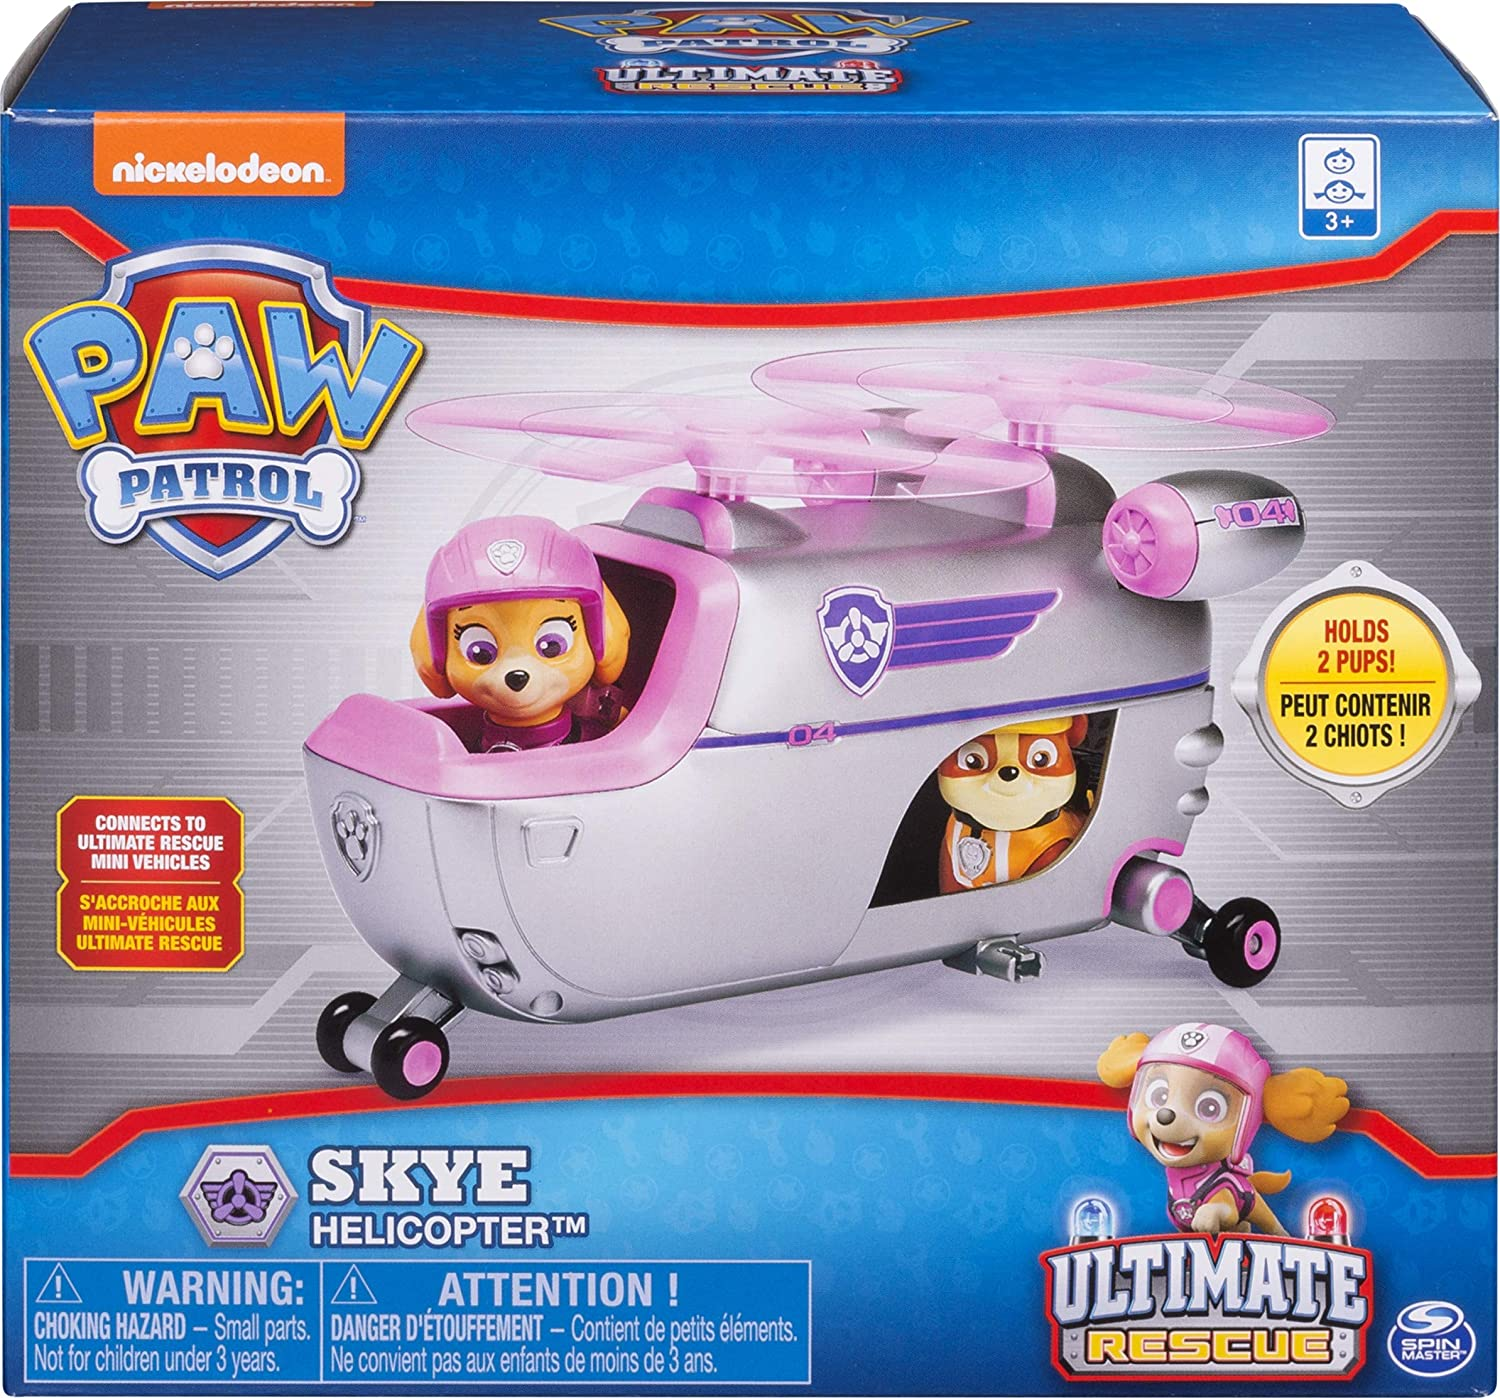 Skye's Ultimate Rescue Helicopter Vehicle /& Figure Paw Patrol Ultimate Rescue